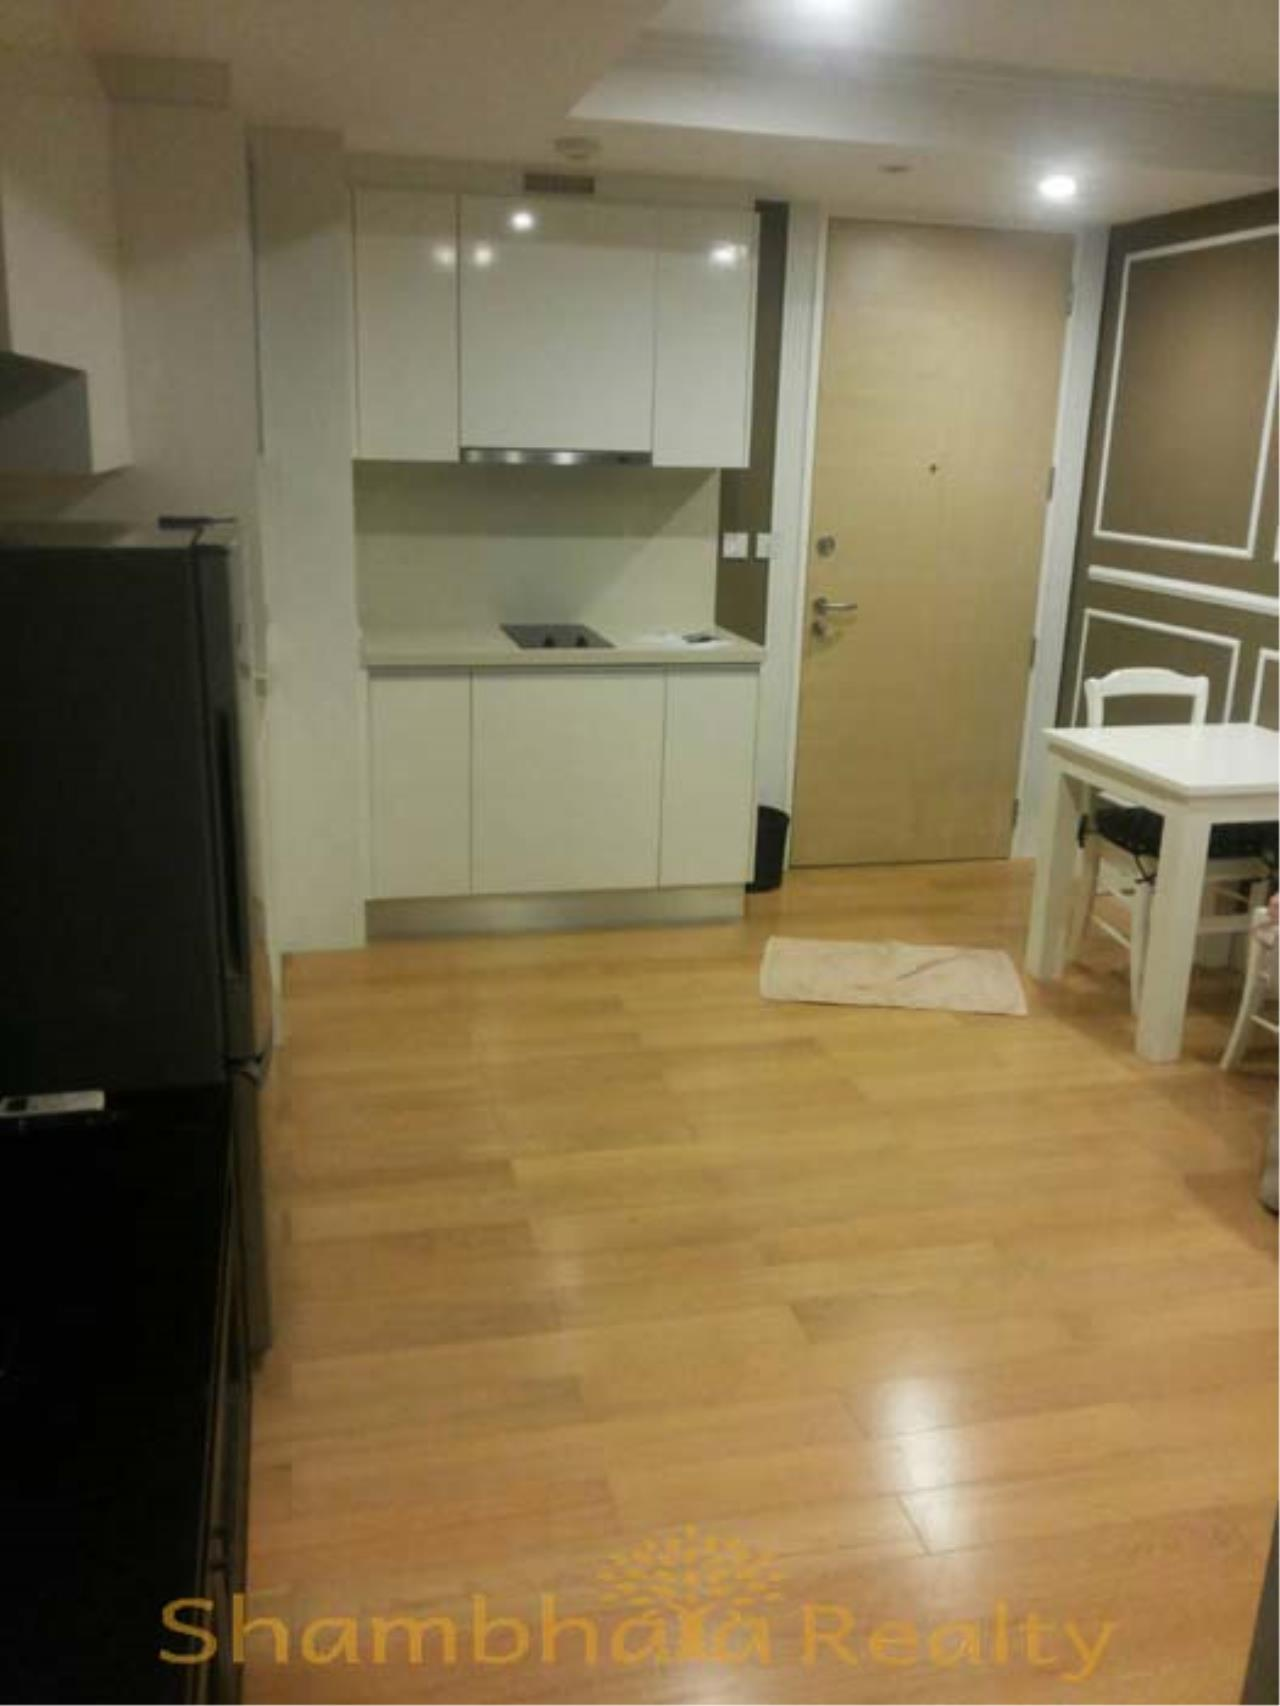 Shambhala Realty Agency's Collezio Condo Condominium for Rent in Sathon 8 road or Silom 3 road 1